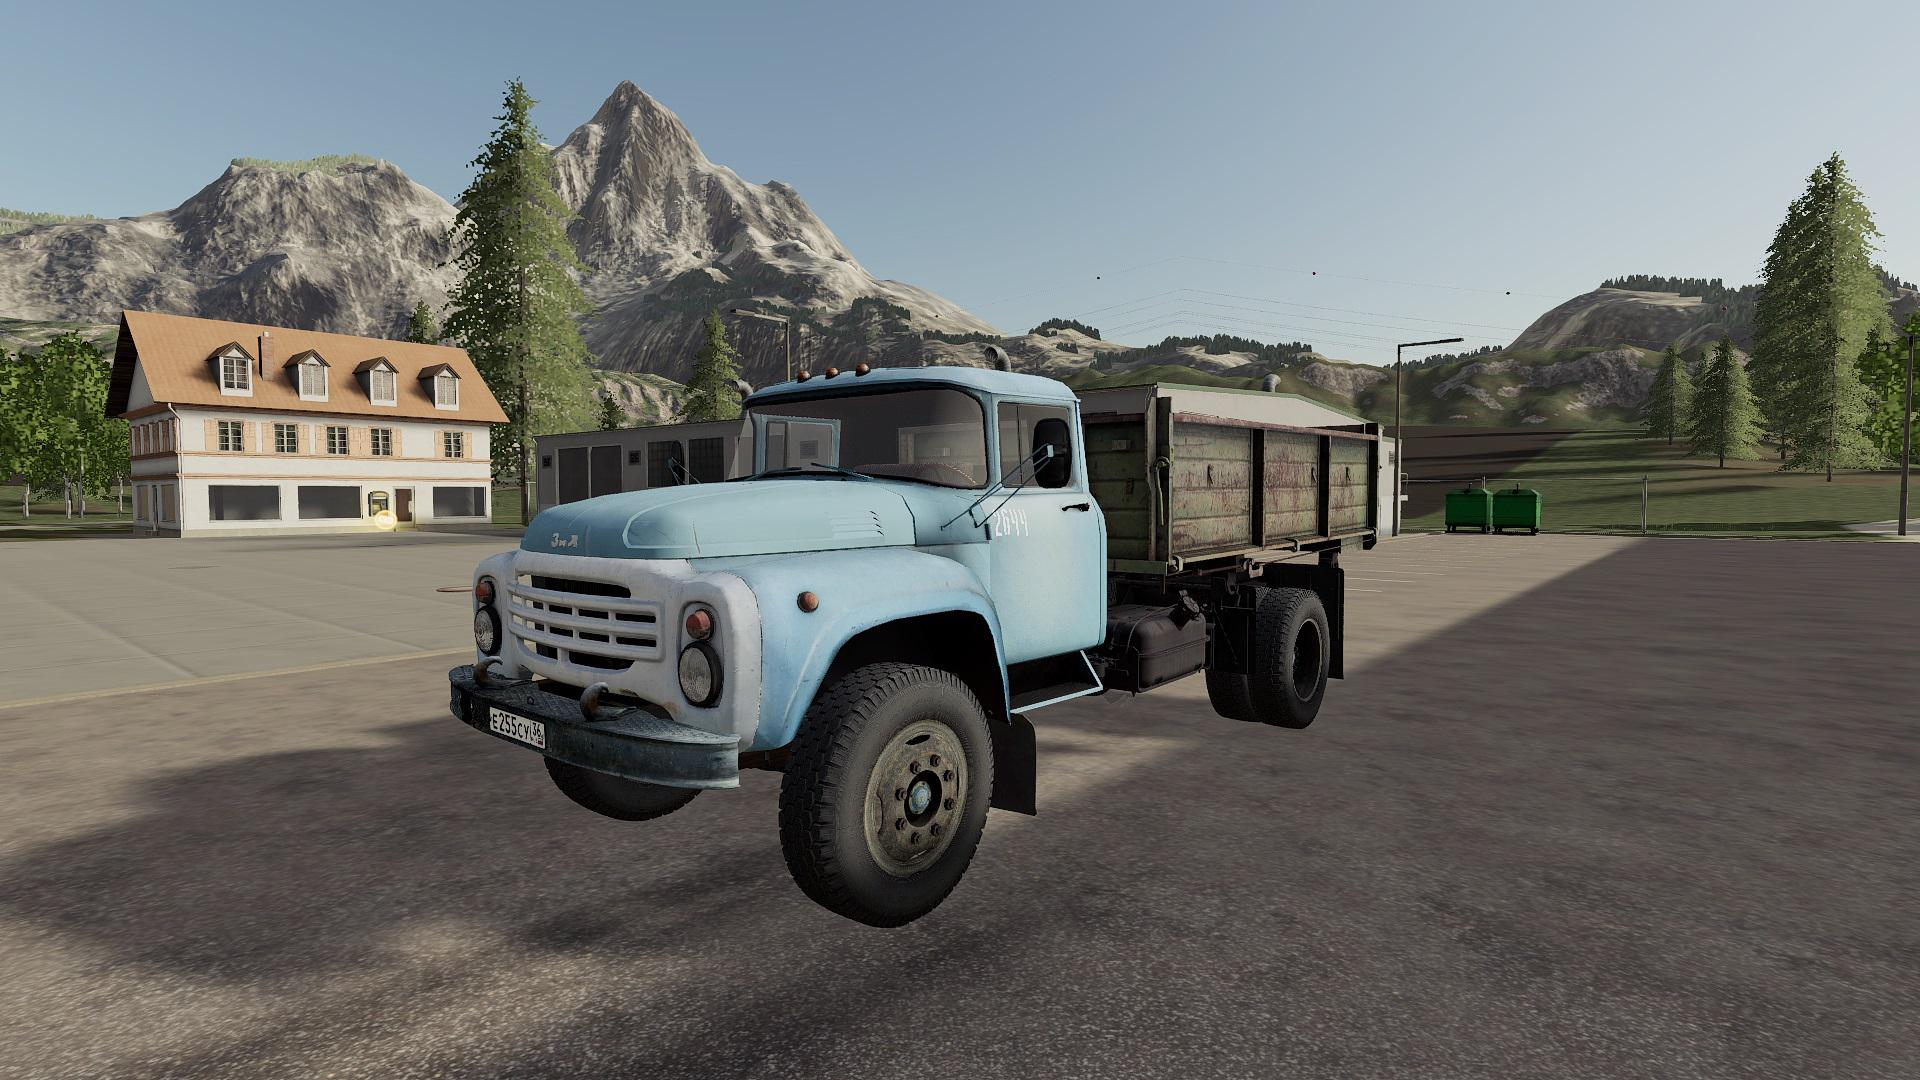 ZIL-130 sel Truck v1.2   FS19 mods, Farming simulator 19 mods on map of mcdonald's, map of fedex, map of north america, map of frontier communications, map of the library of congress, map of us banks, map of us navy, map of home, map of currencies, map of td bank, map of bank of america, map of nokia, map of tv, map of mount nyiragongo, map of stupid people, map of usa time, map of currents, map of business, map of maps,